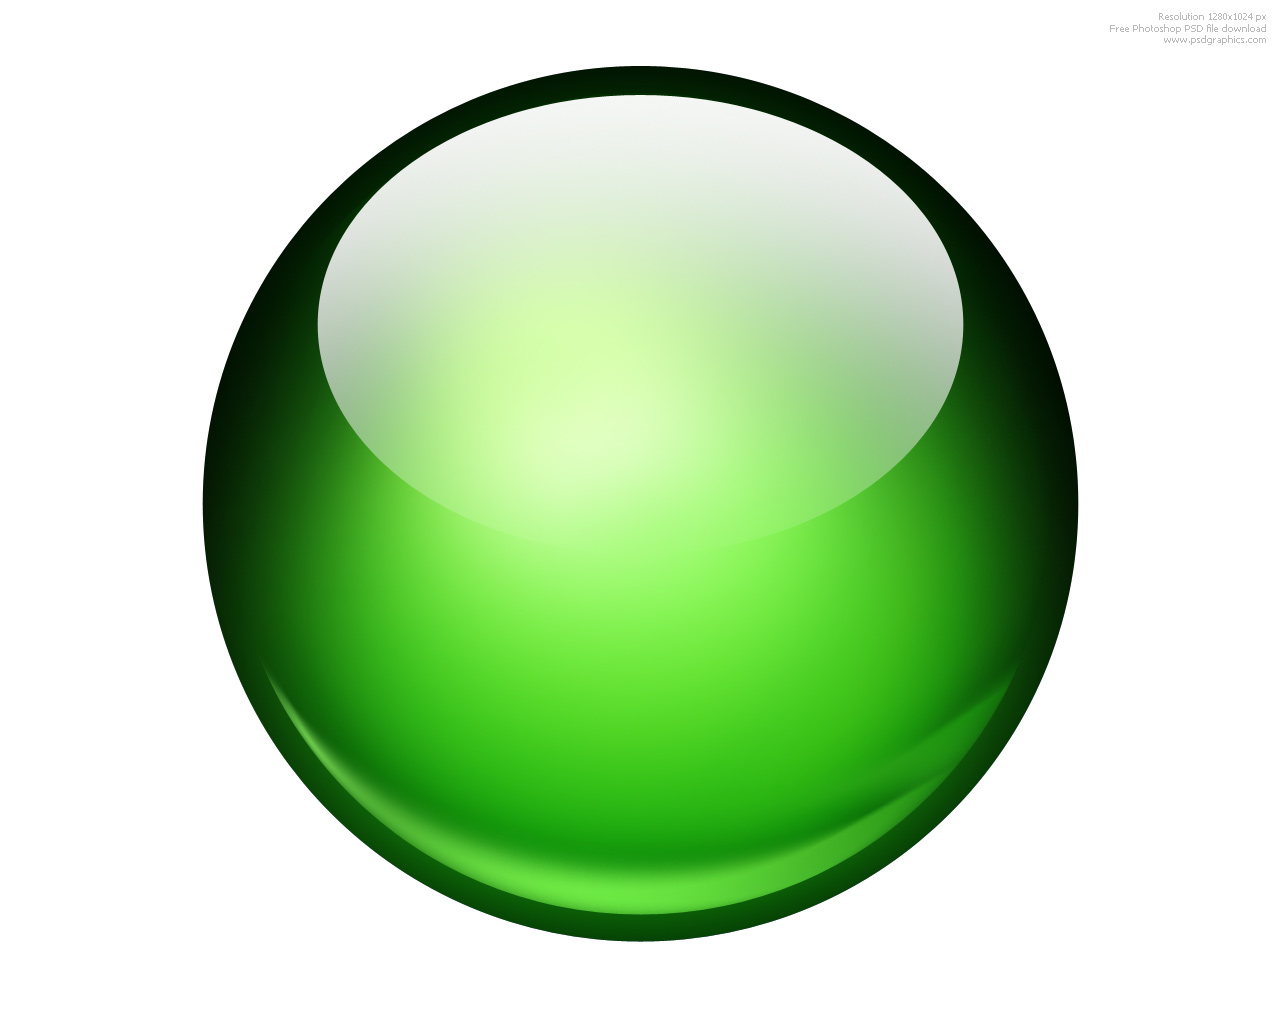 15 Green 3D Ball Icons Images